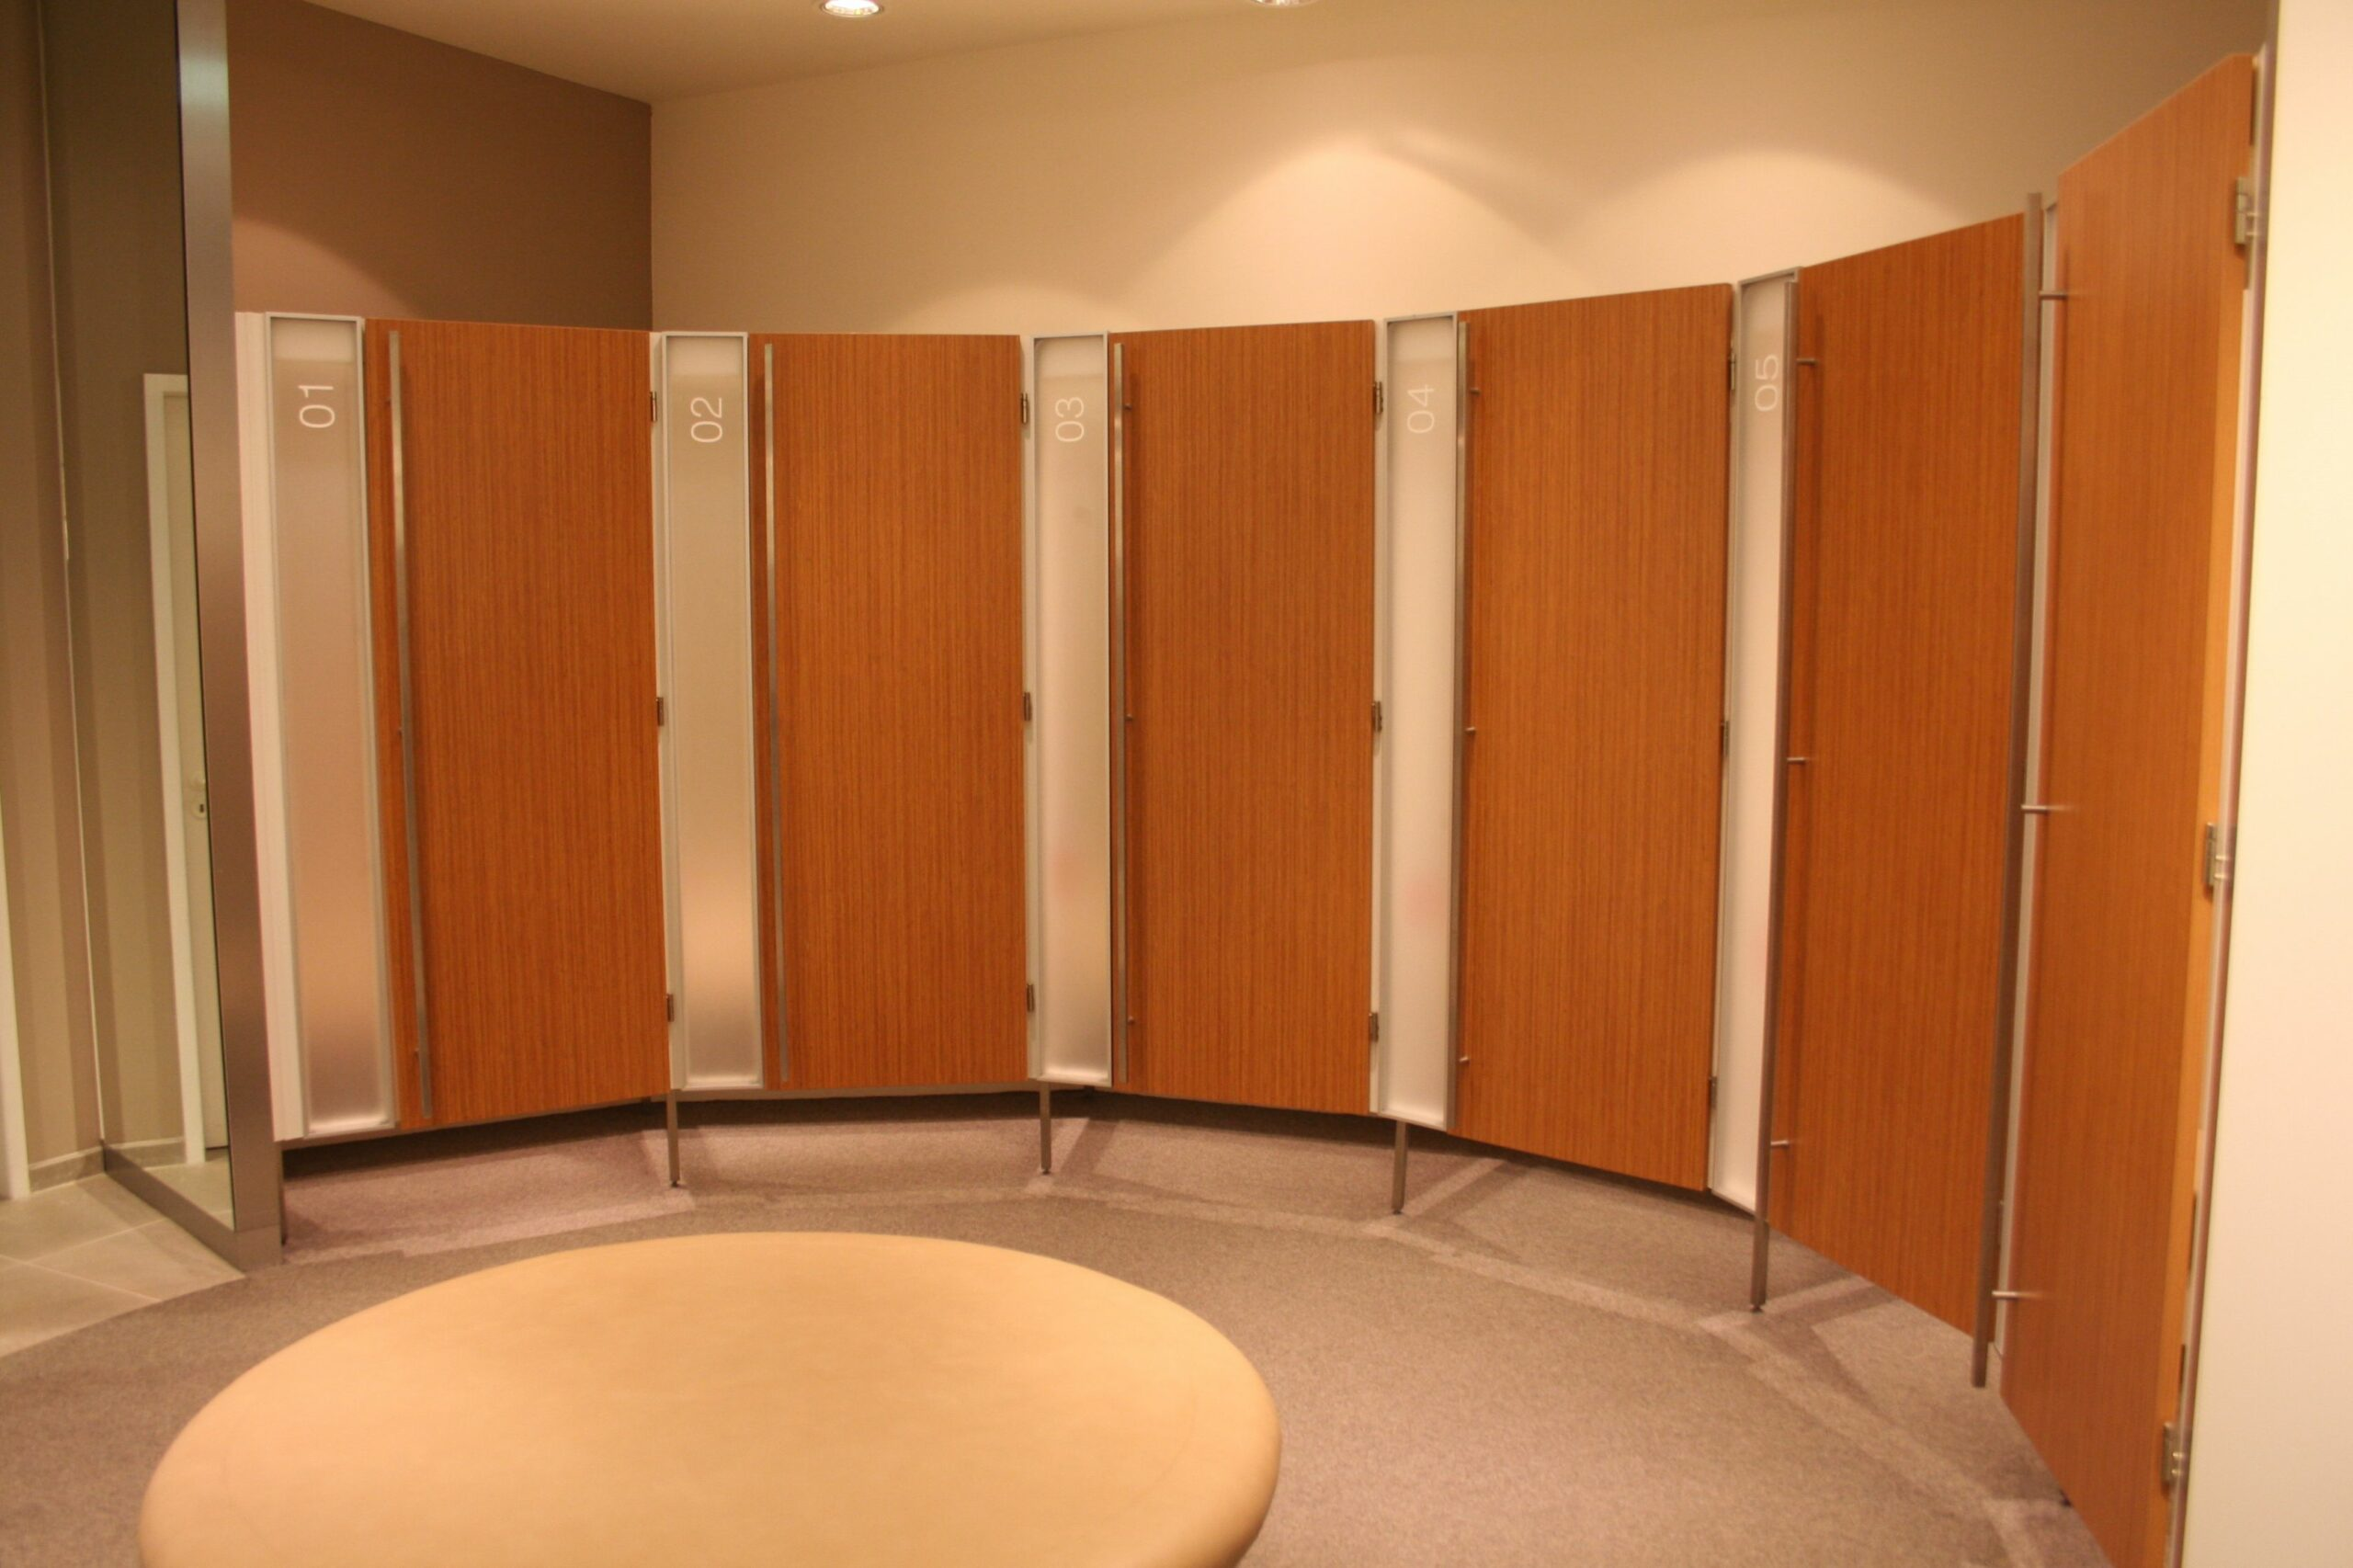 Changing room - Wikiwand - makeup room wiki